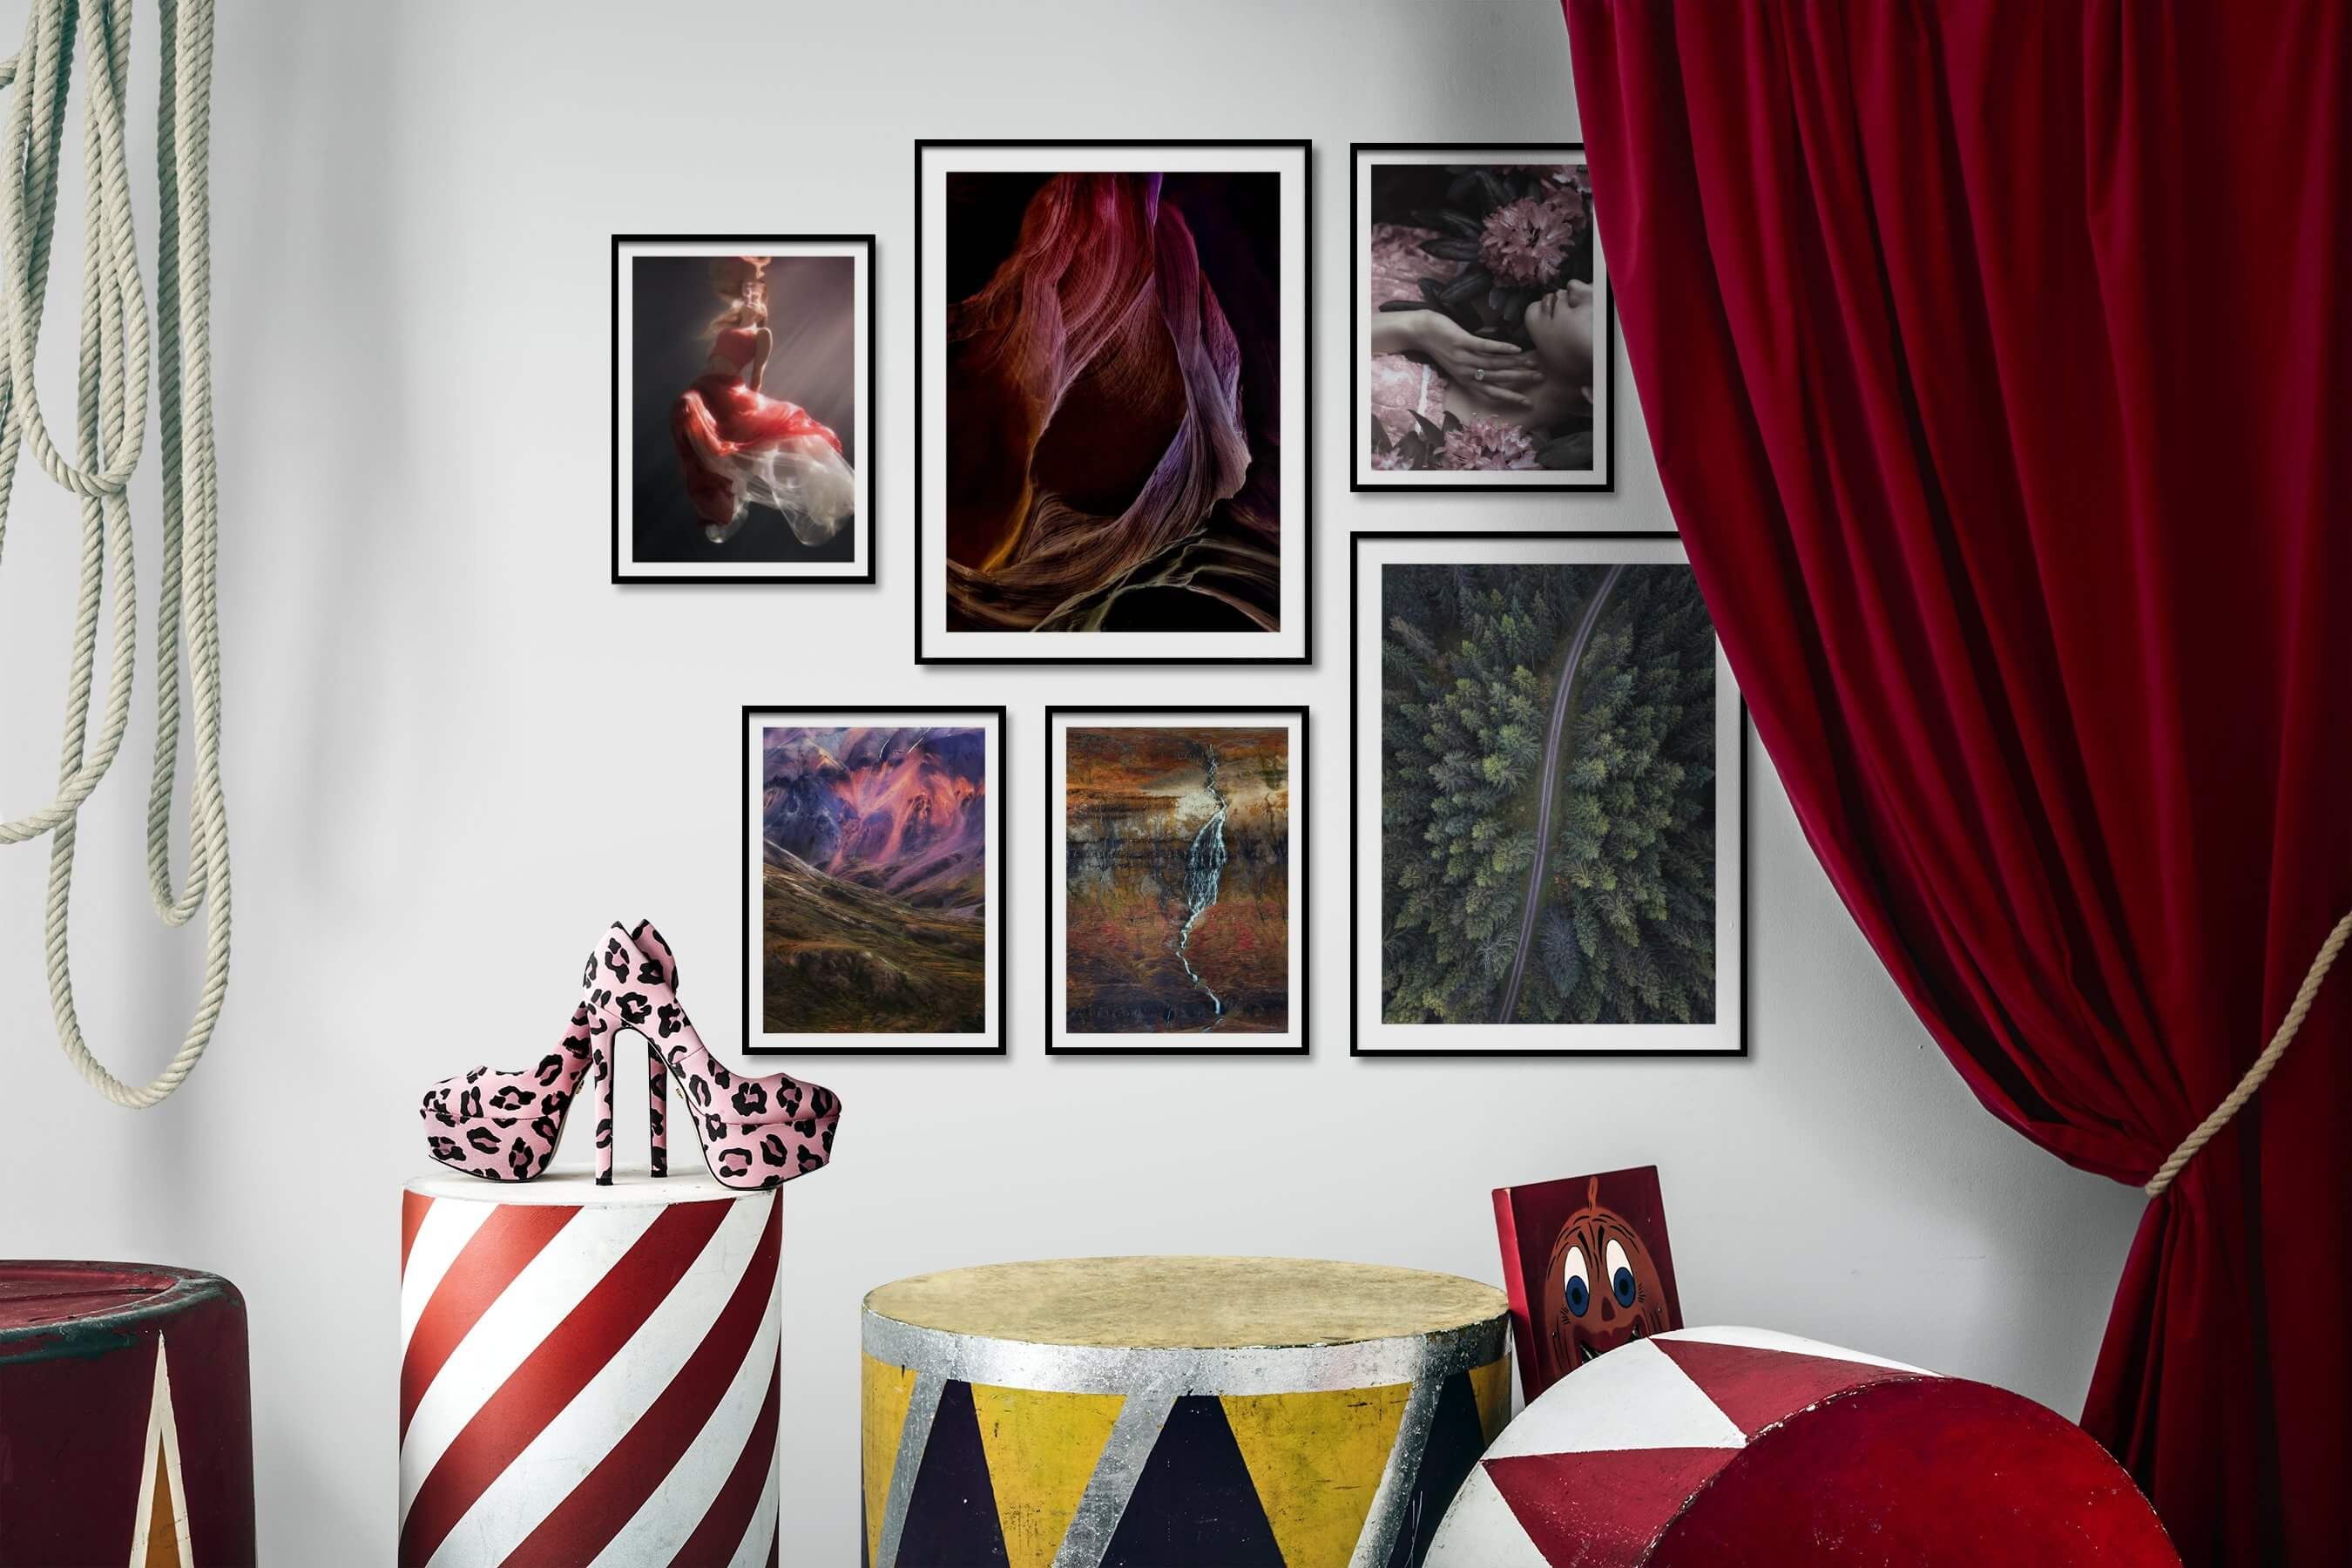 Gallery wall idea with six framed pictures arranged on a wall depicting Fashion & Beauty, Beach & Water, For the Moderate, Nature, Mindfulness, and Flowers & Plants